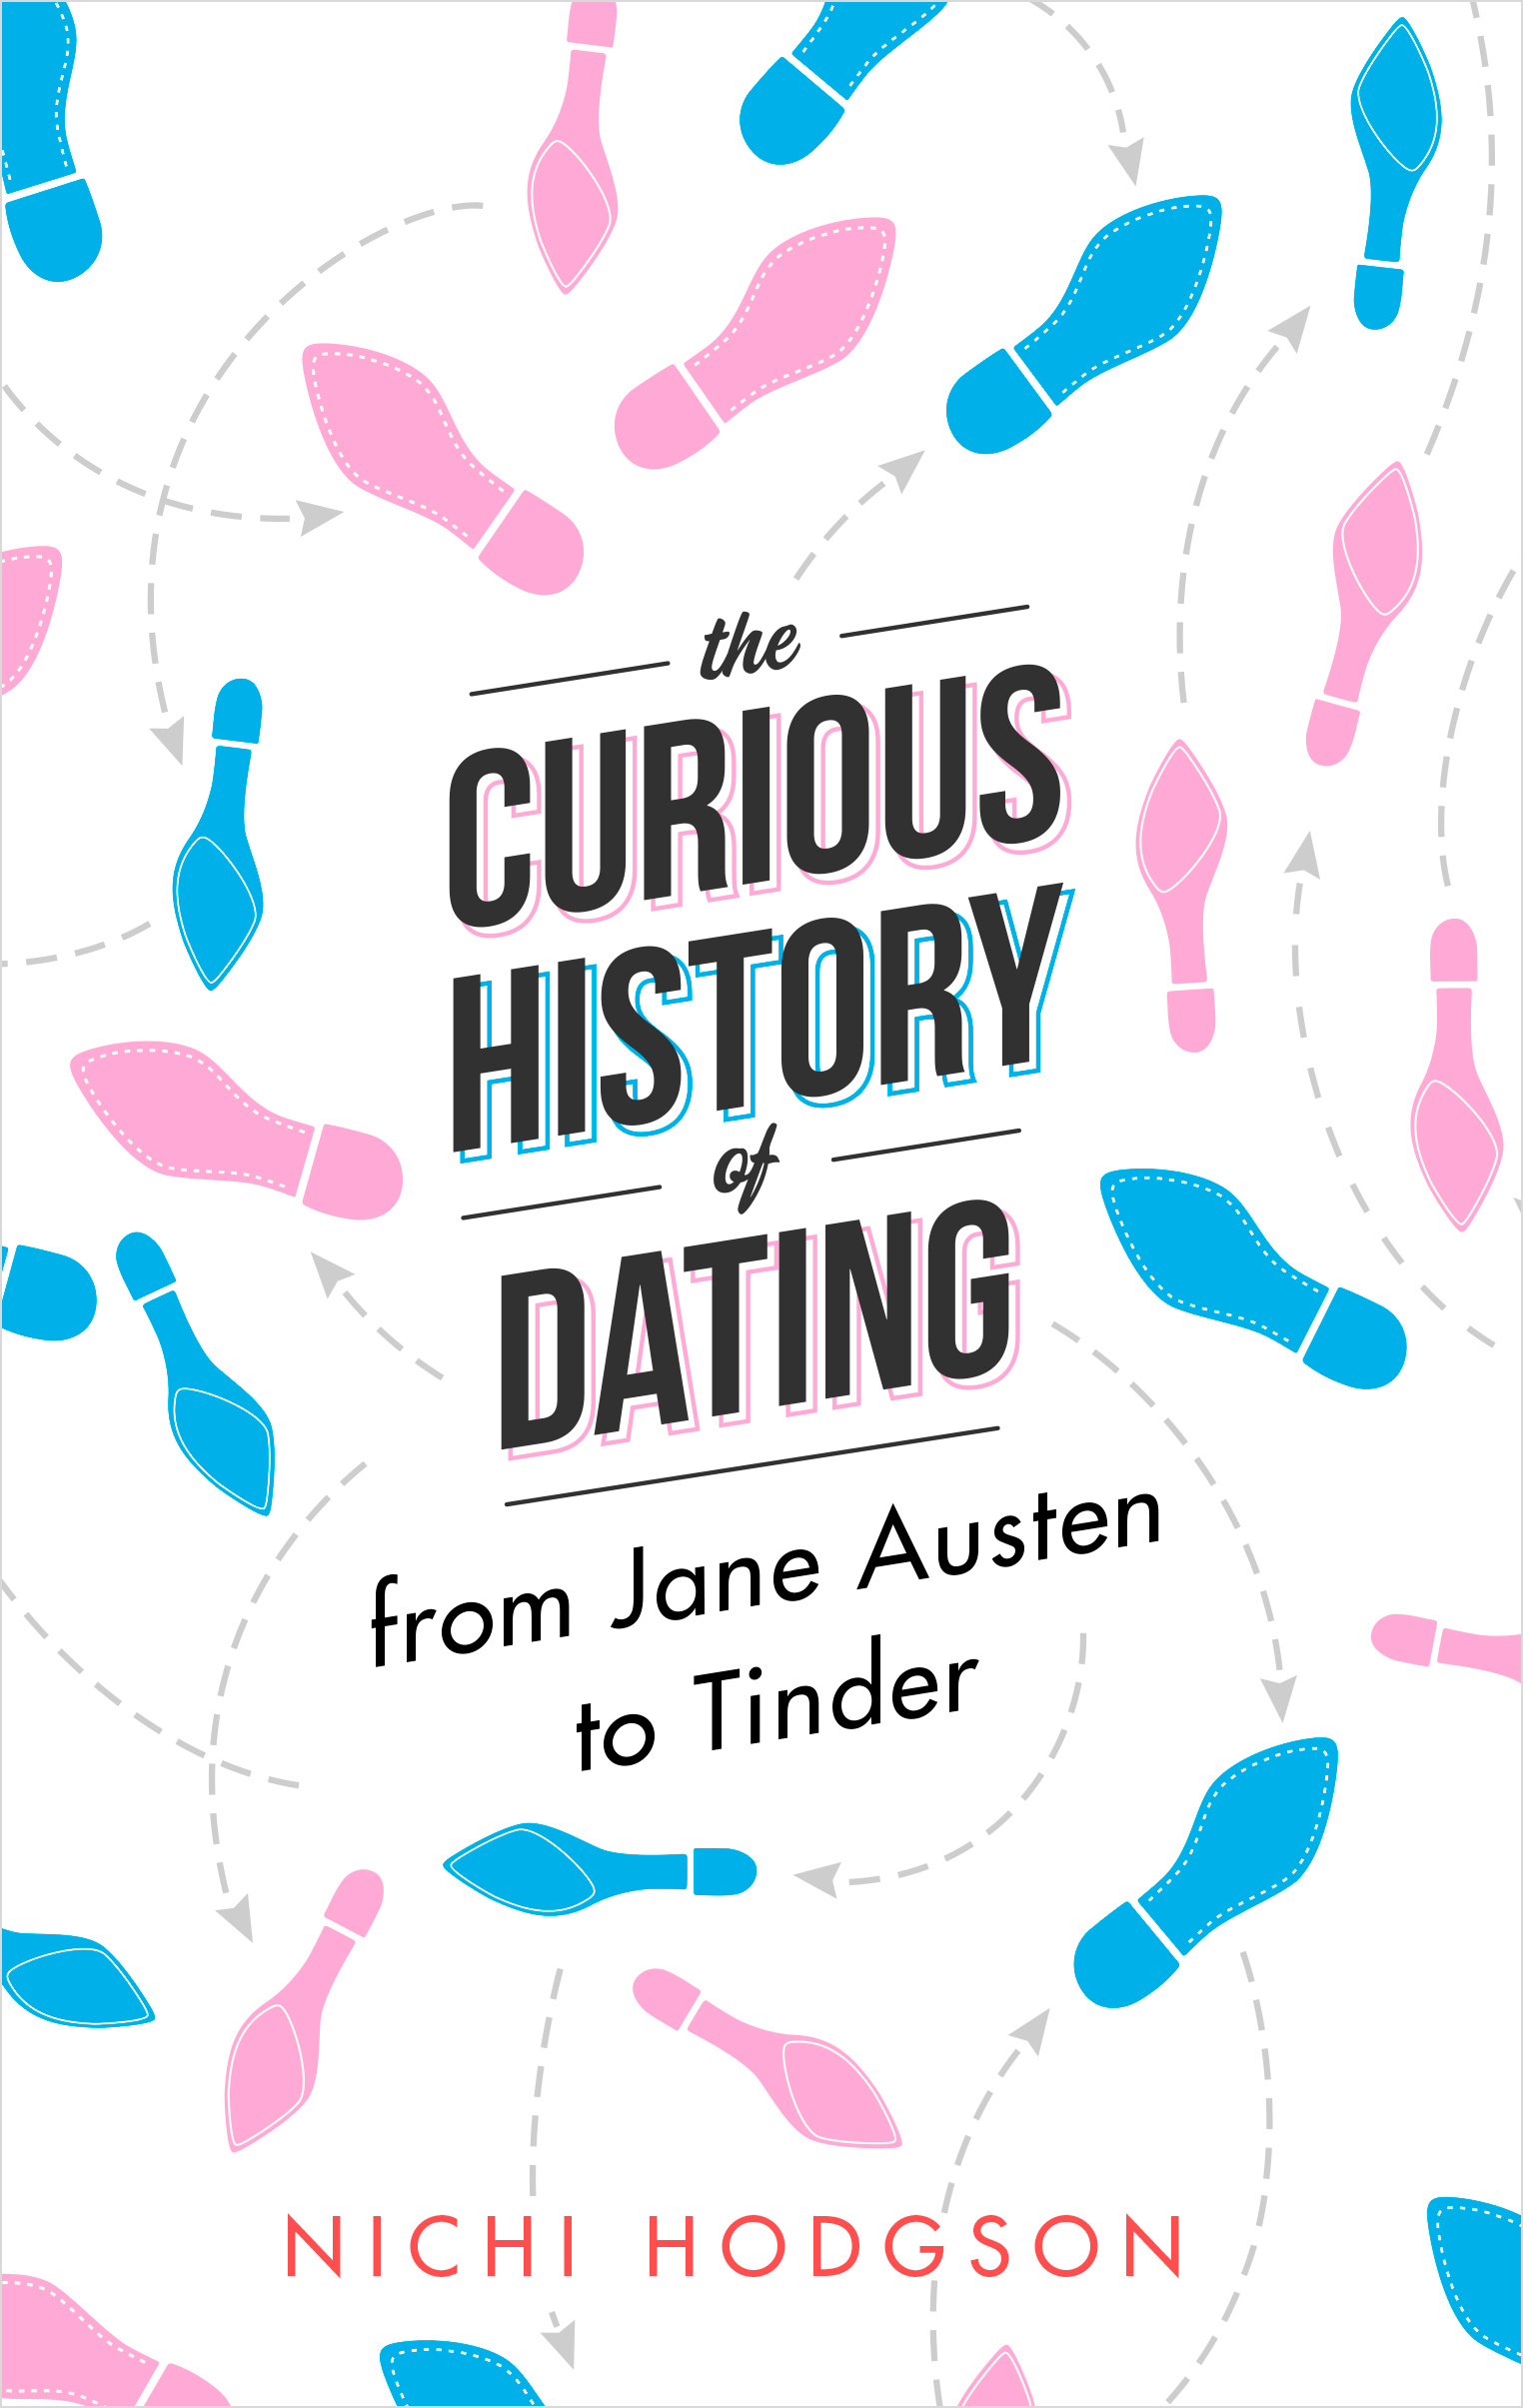 The Curious History of Dating: From Jane Austen to Tinder by Nichi Hodgson, ISBN: 9781472138064